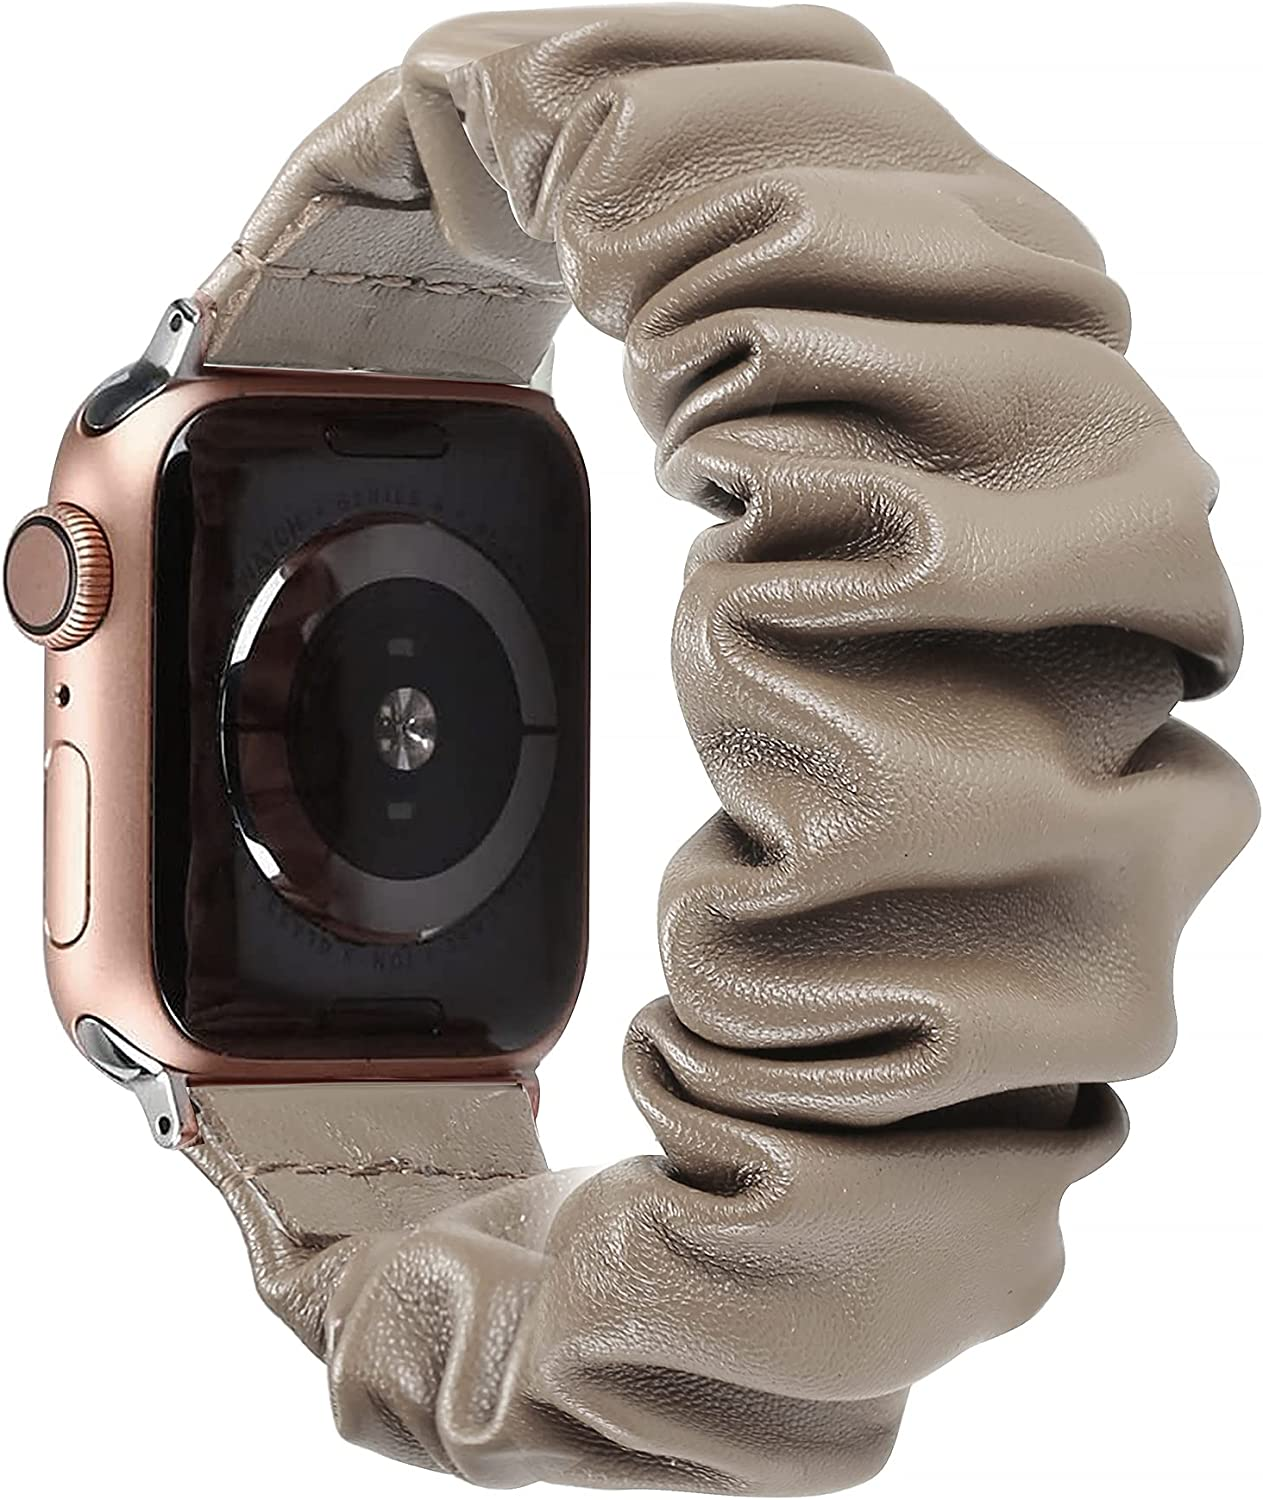 Secbolt Goatskin Scrunchie Bands Compatible with Apple Watch Band 38mm 40mm iWatch Series SE/6/5/4/3/2/1, Leather Scrunchy Band for Women